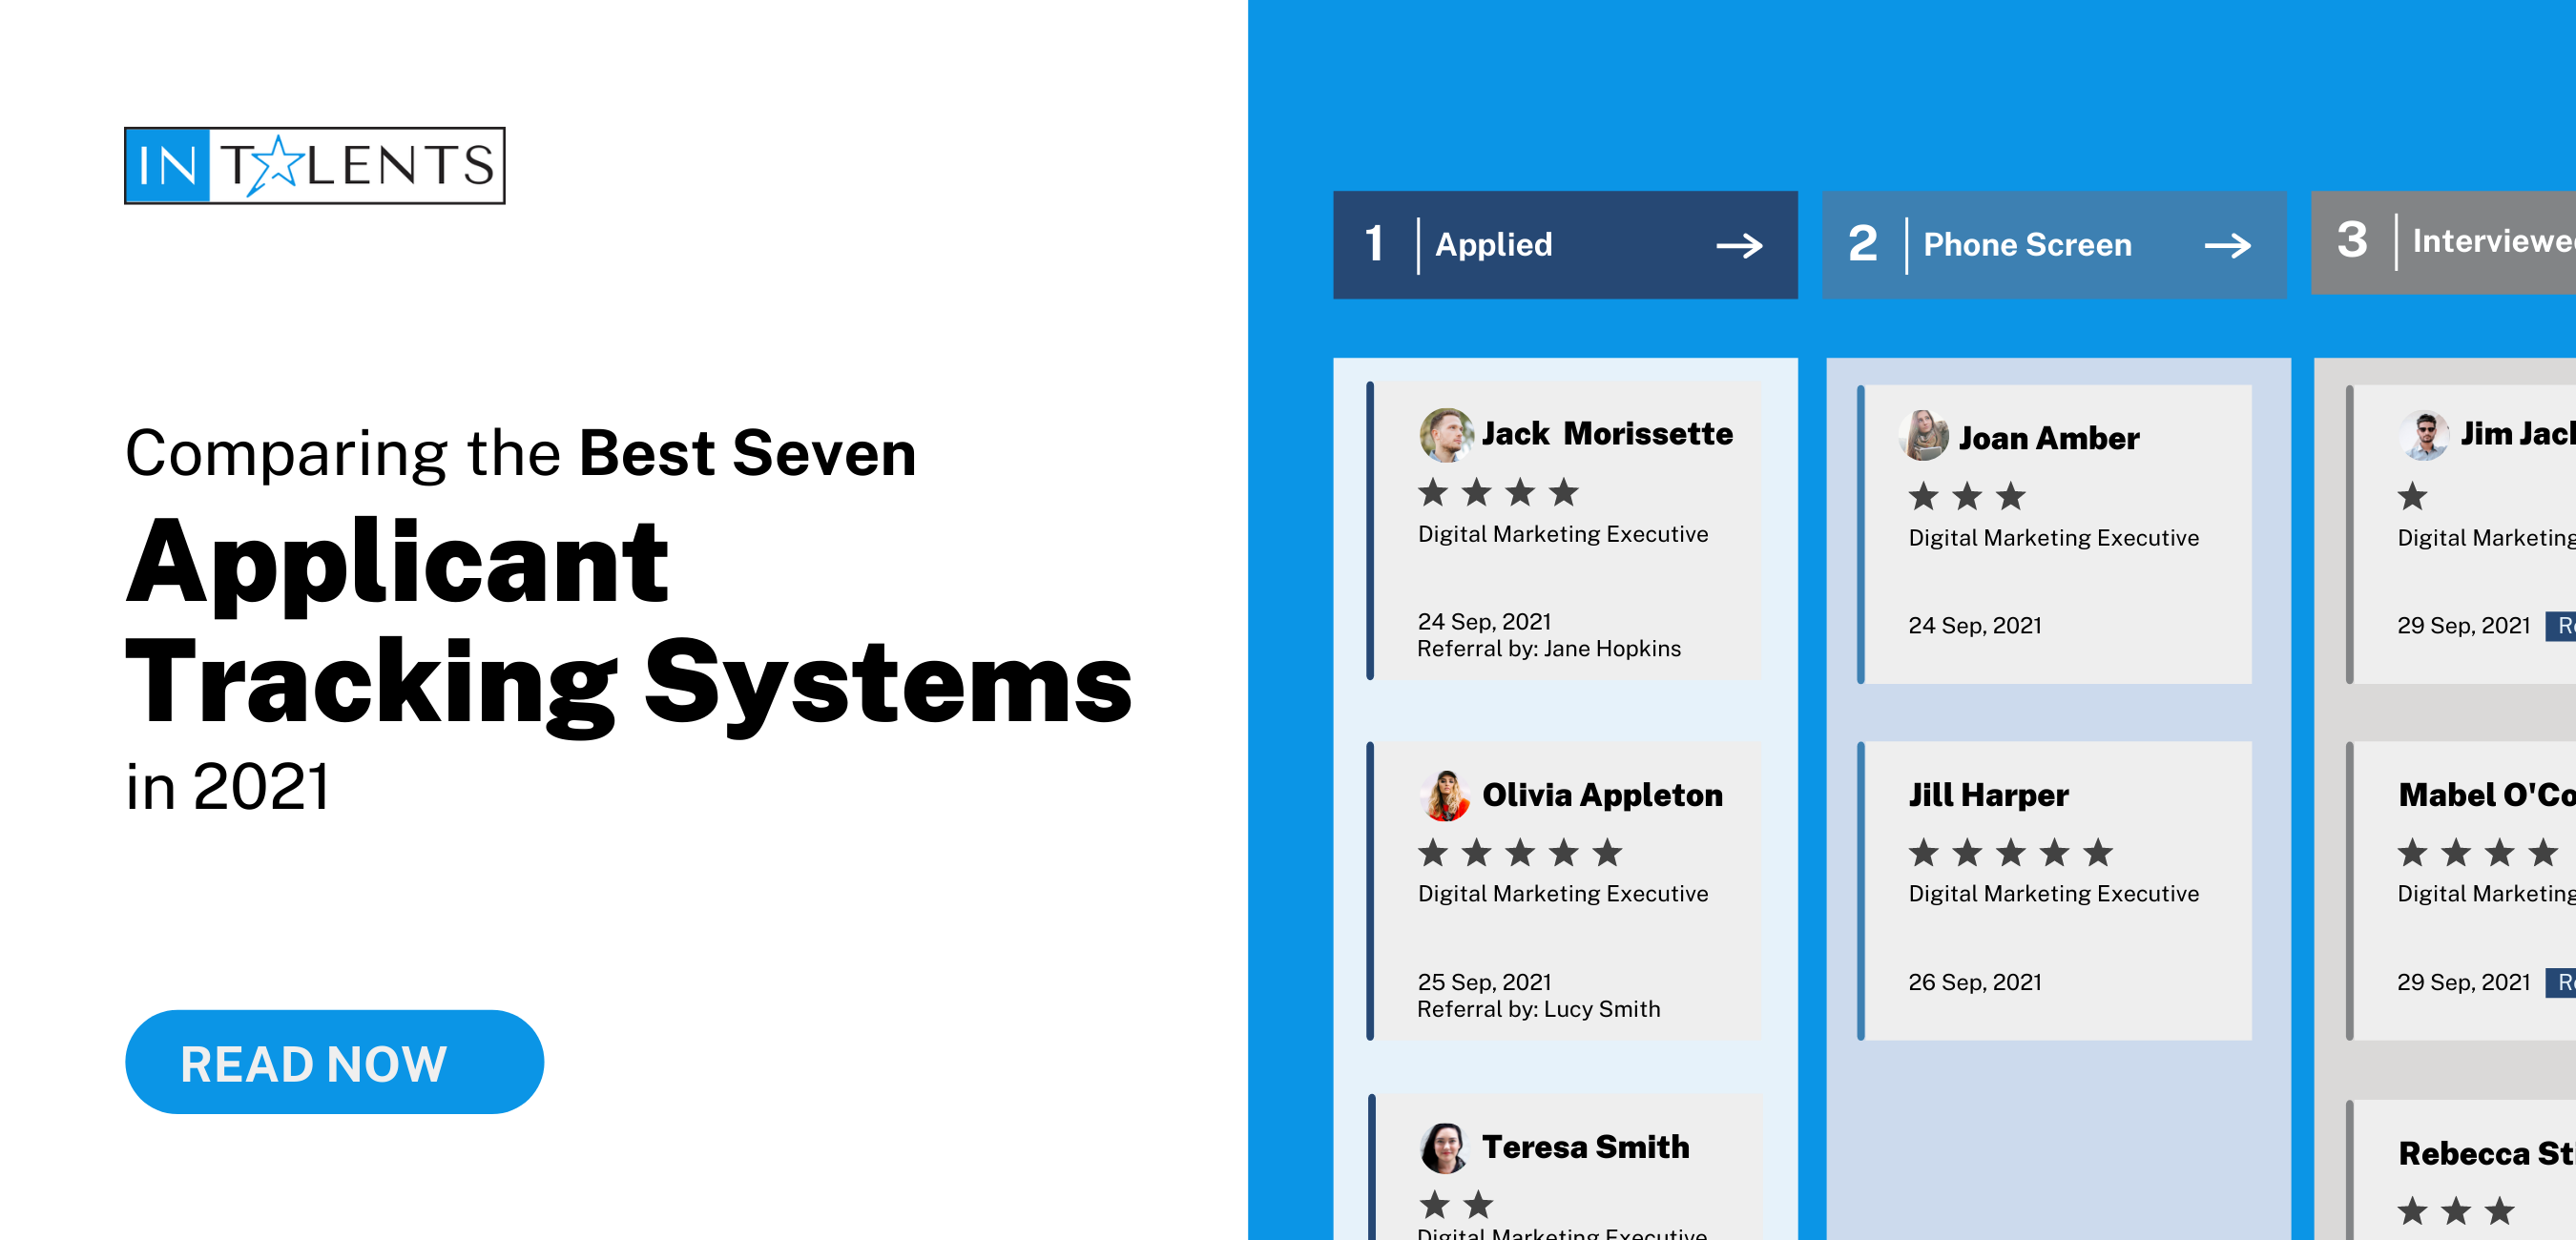 intalents-compare-top-applicant-tracking-systems-2021